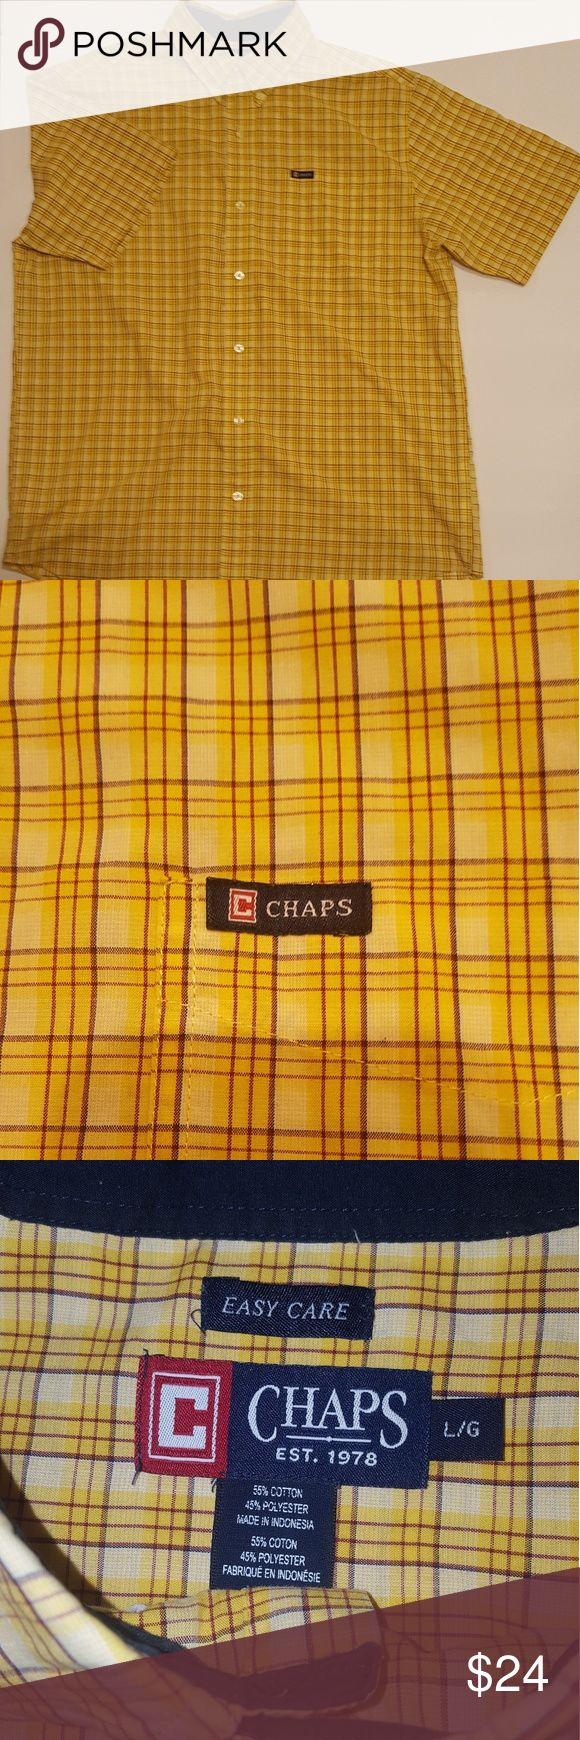 Men's Chaps SHIRT (Large) Short Sleeve Plaid Men's Chaps SHIRT (Large) Short Sleeve Plaid Button Down Front With Button Down Collar #S-0064 Chaps Shirts Casual Button Down Shirts